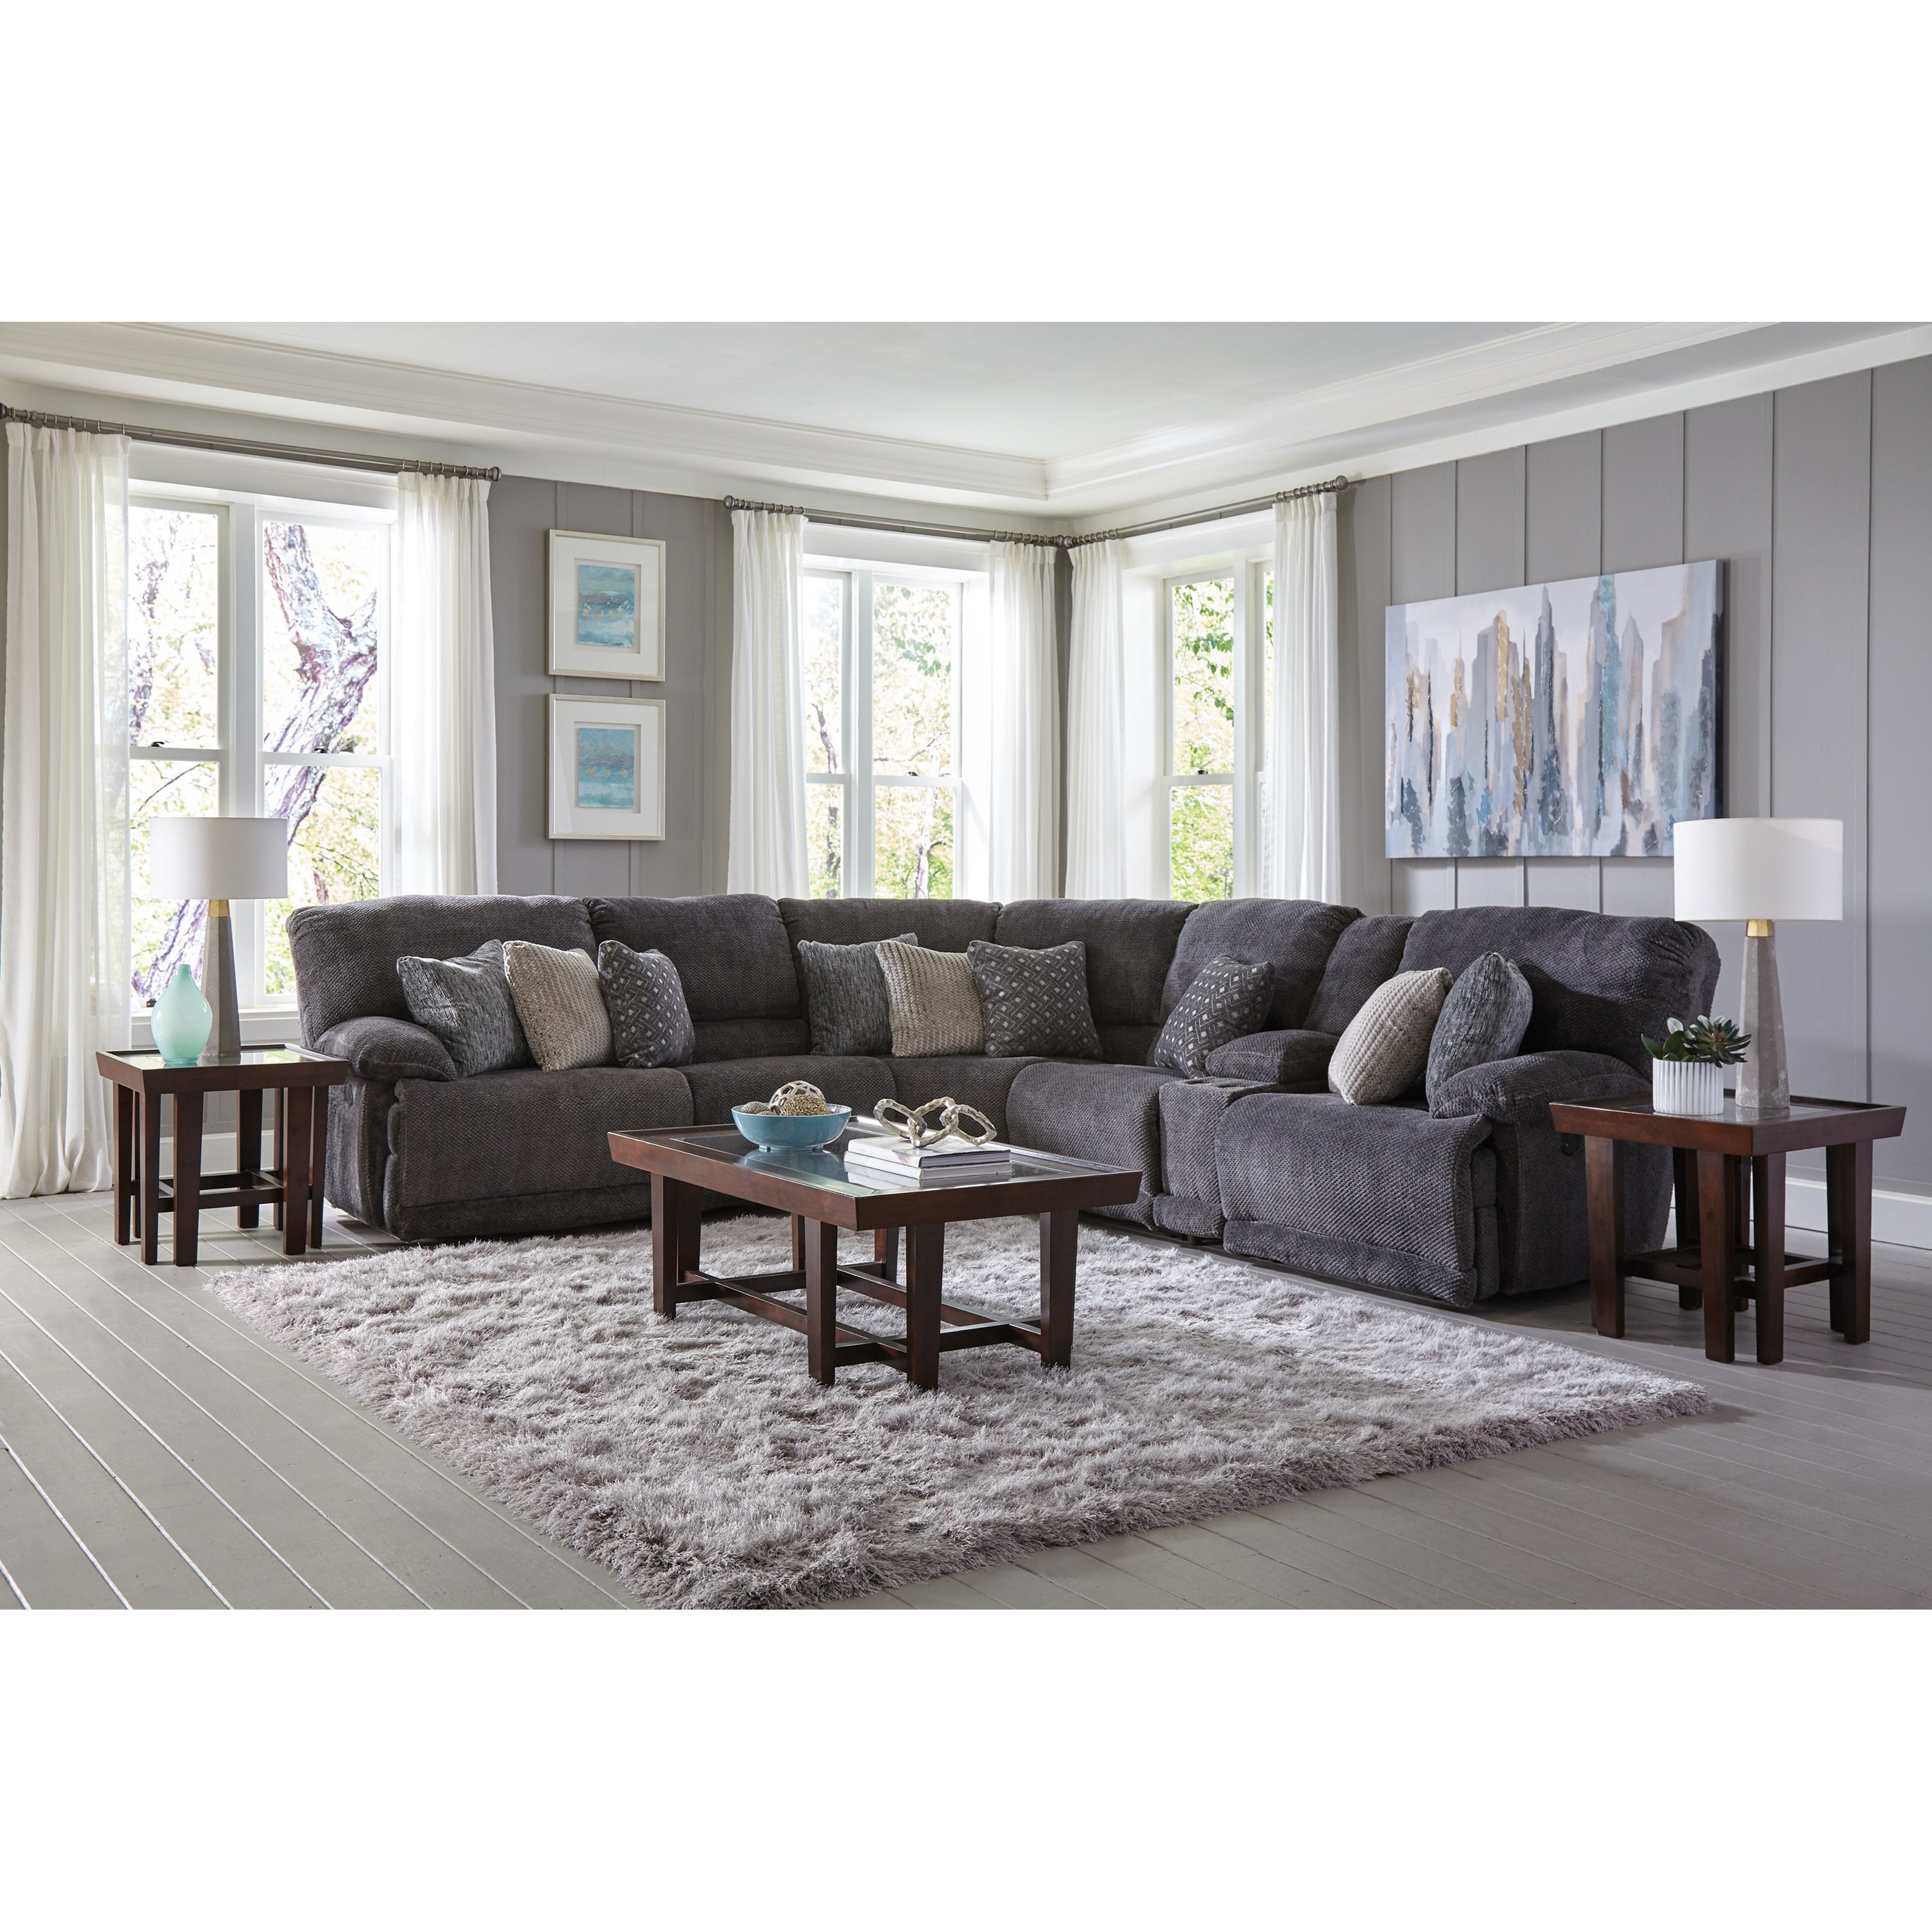 Burbank Power Reclining Sectional by Catnapper at Standard Furniture